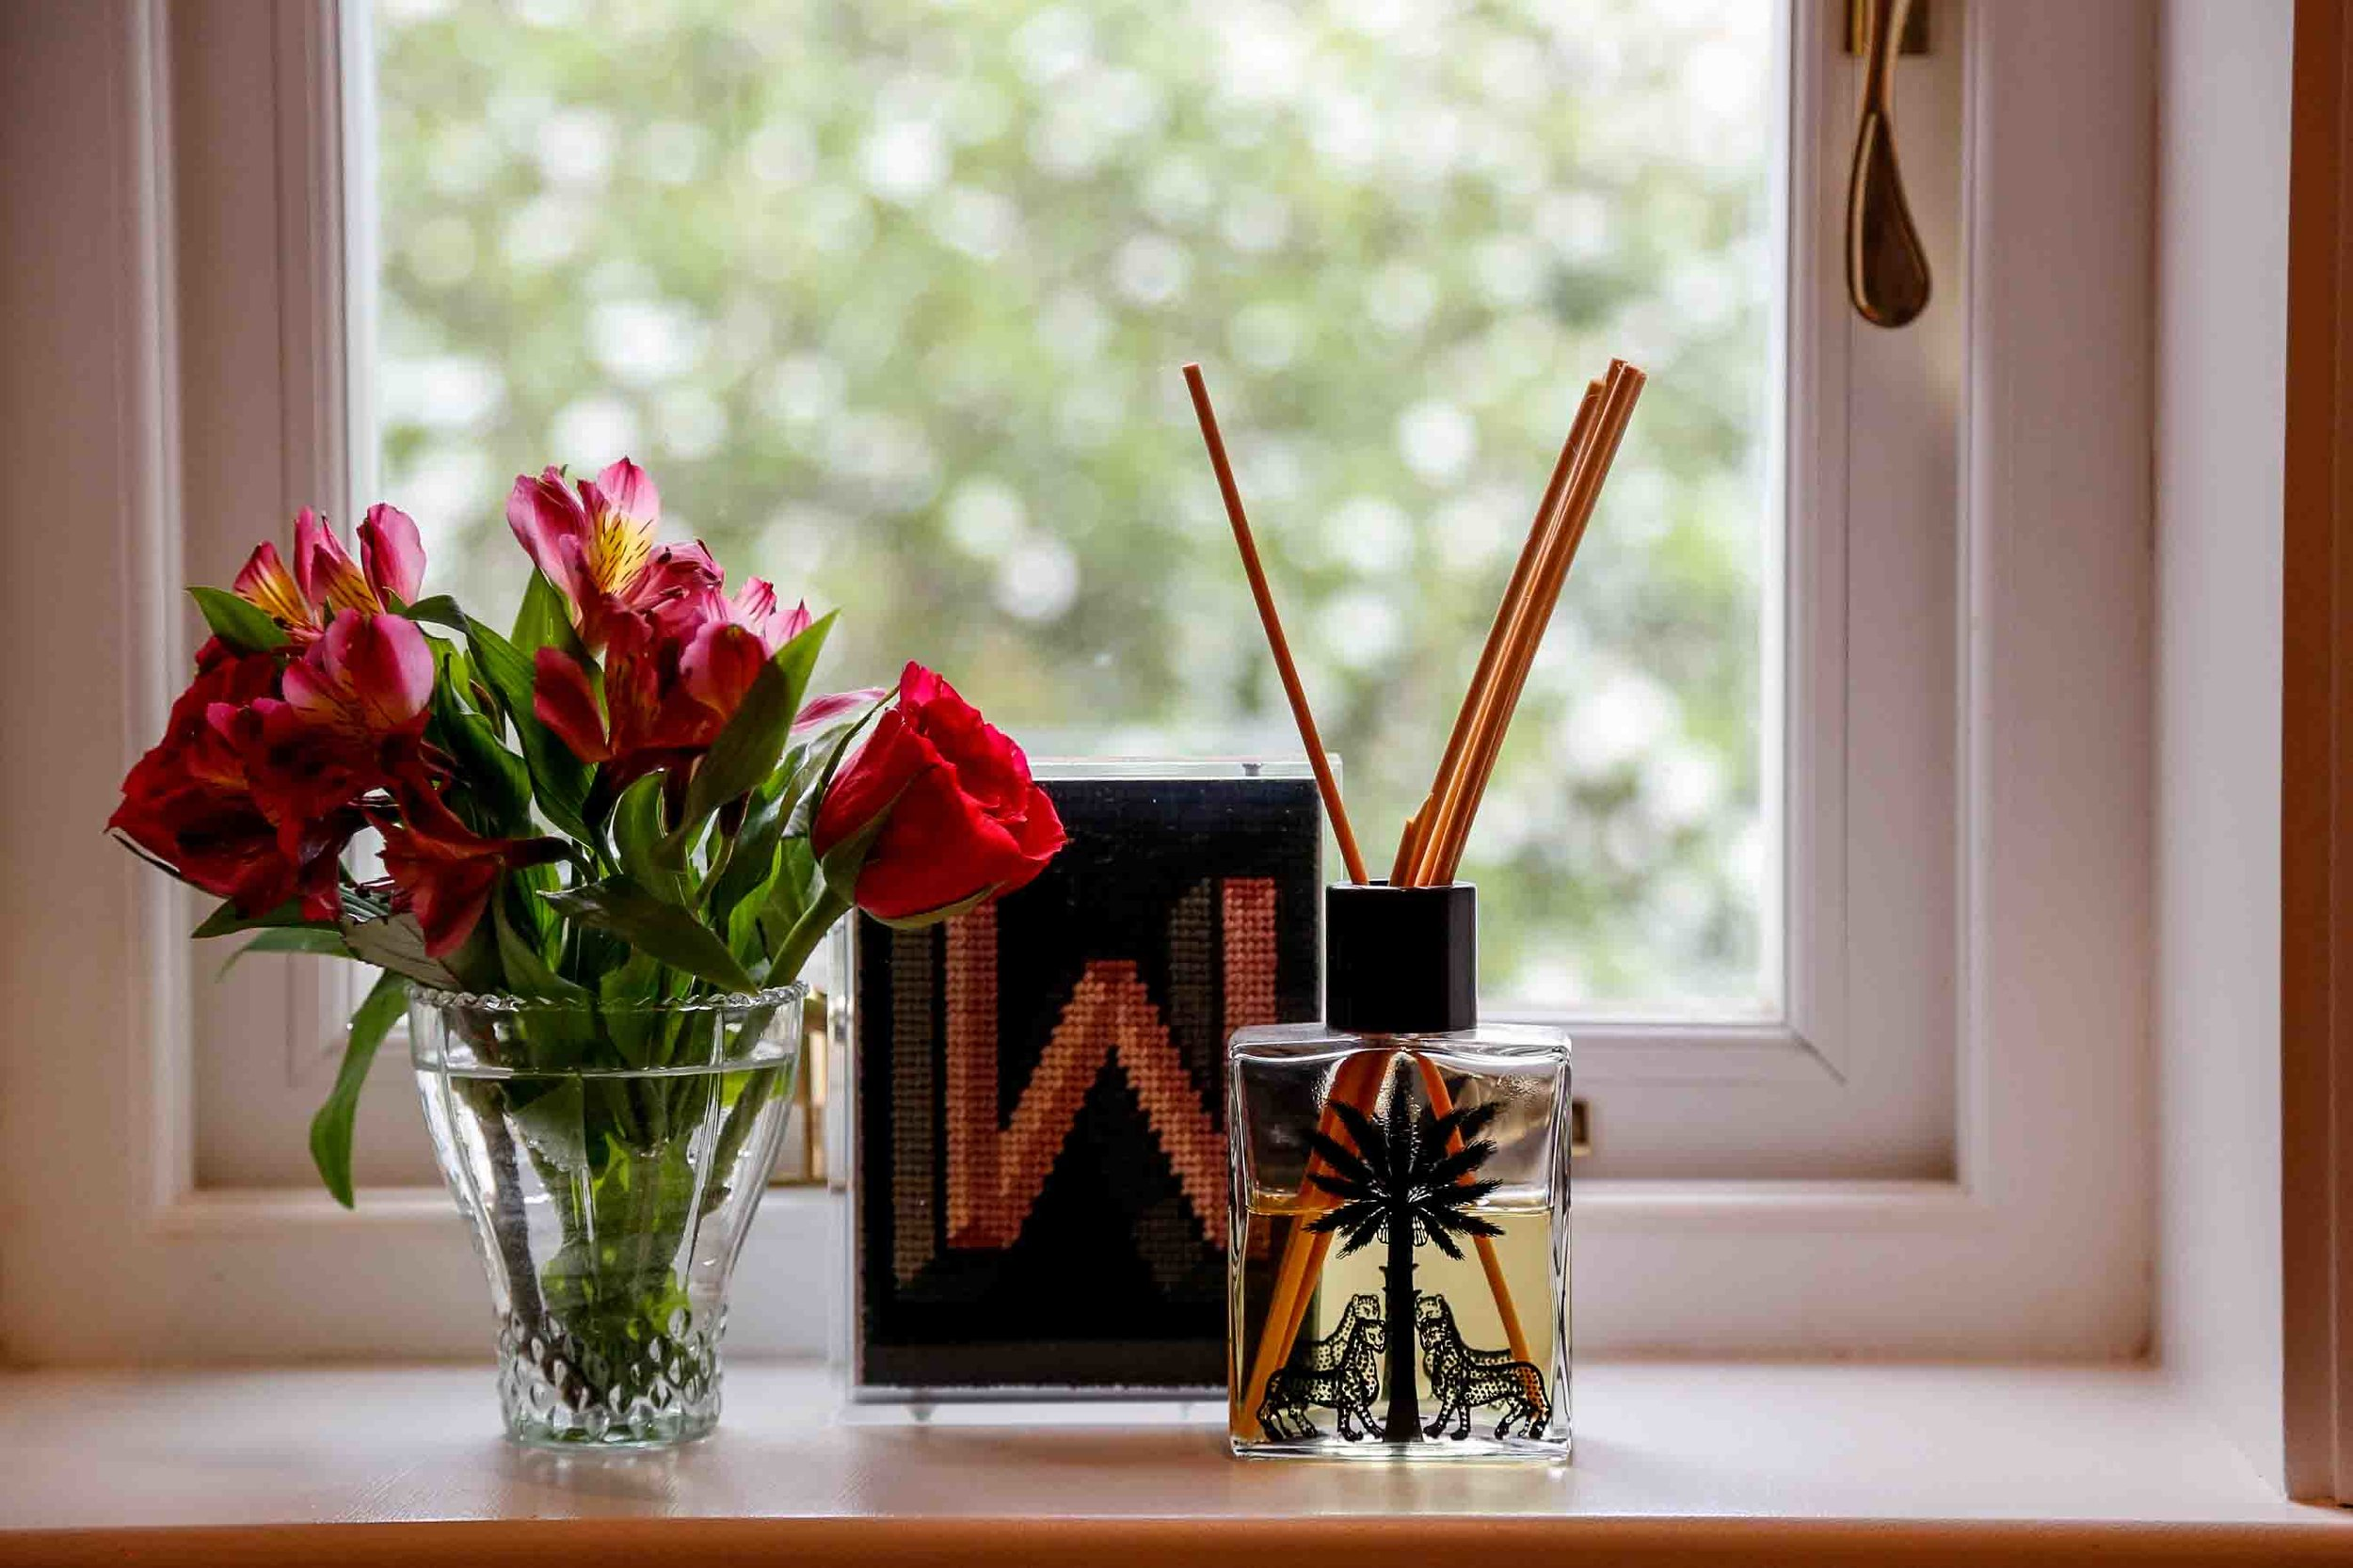 Home Accents - Add a touch of scent and colour to your home…